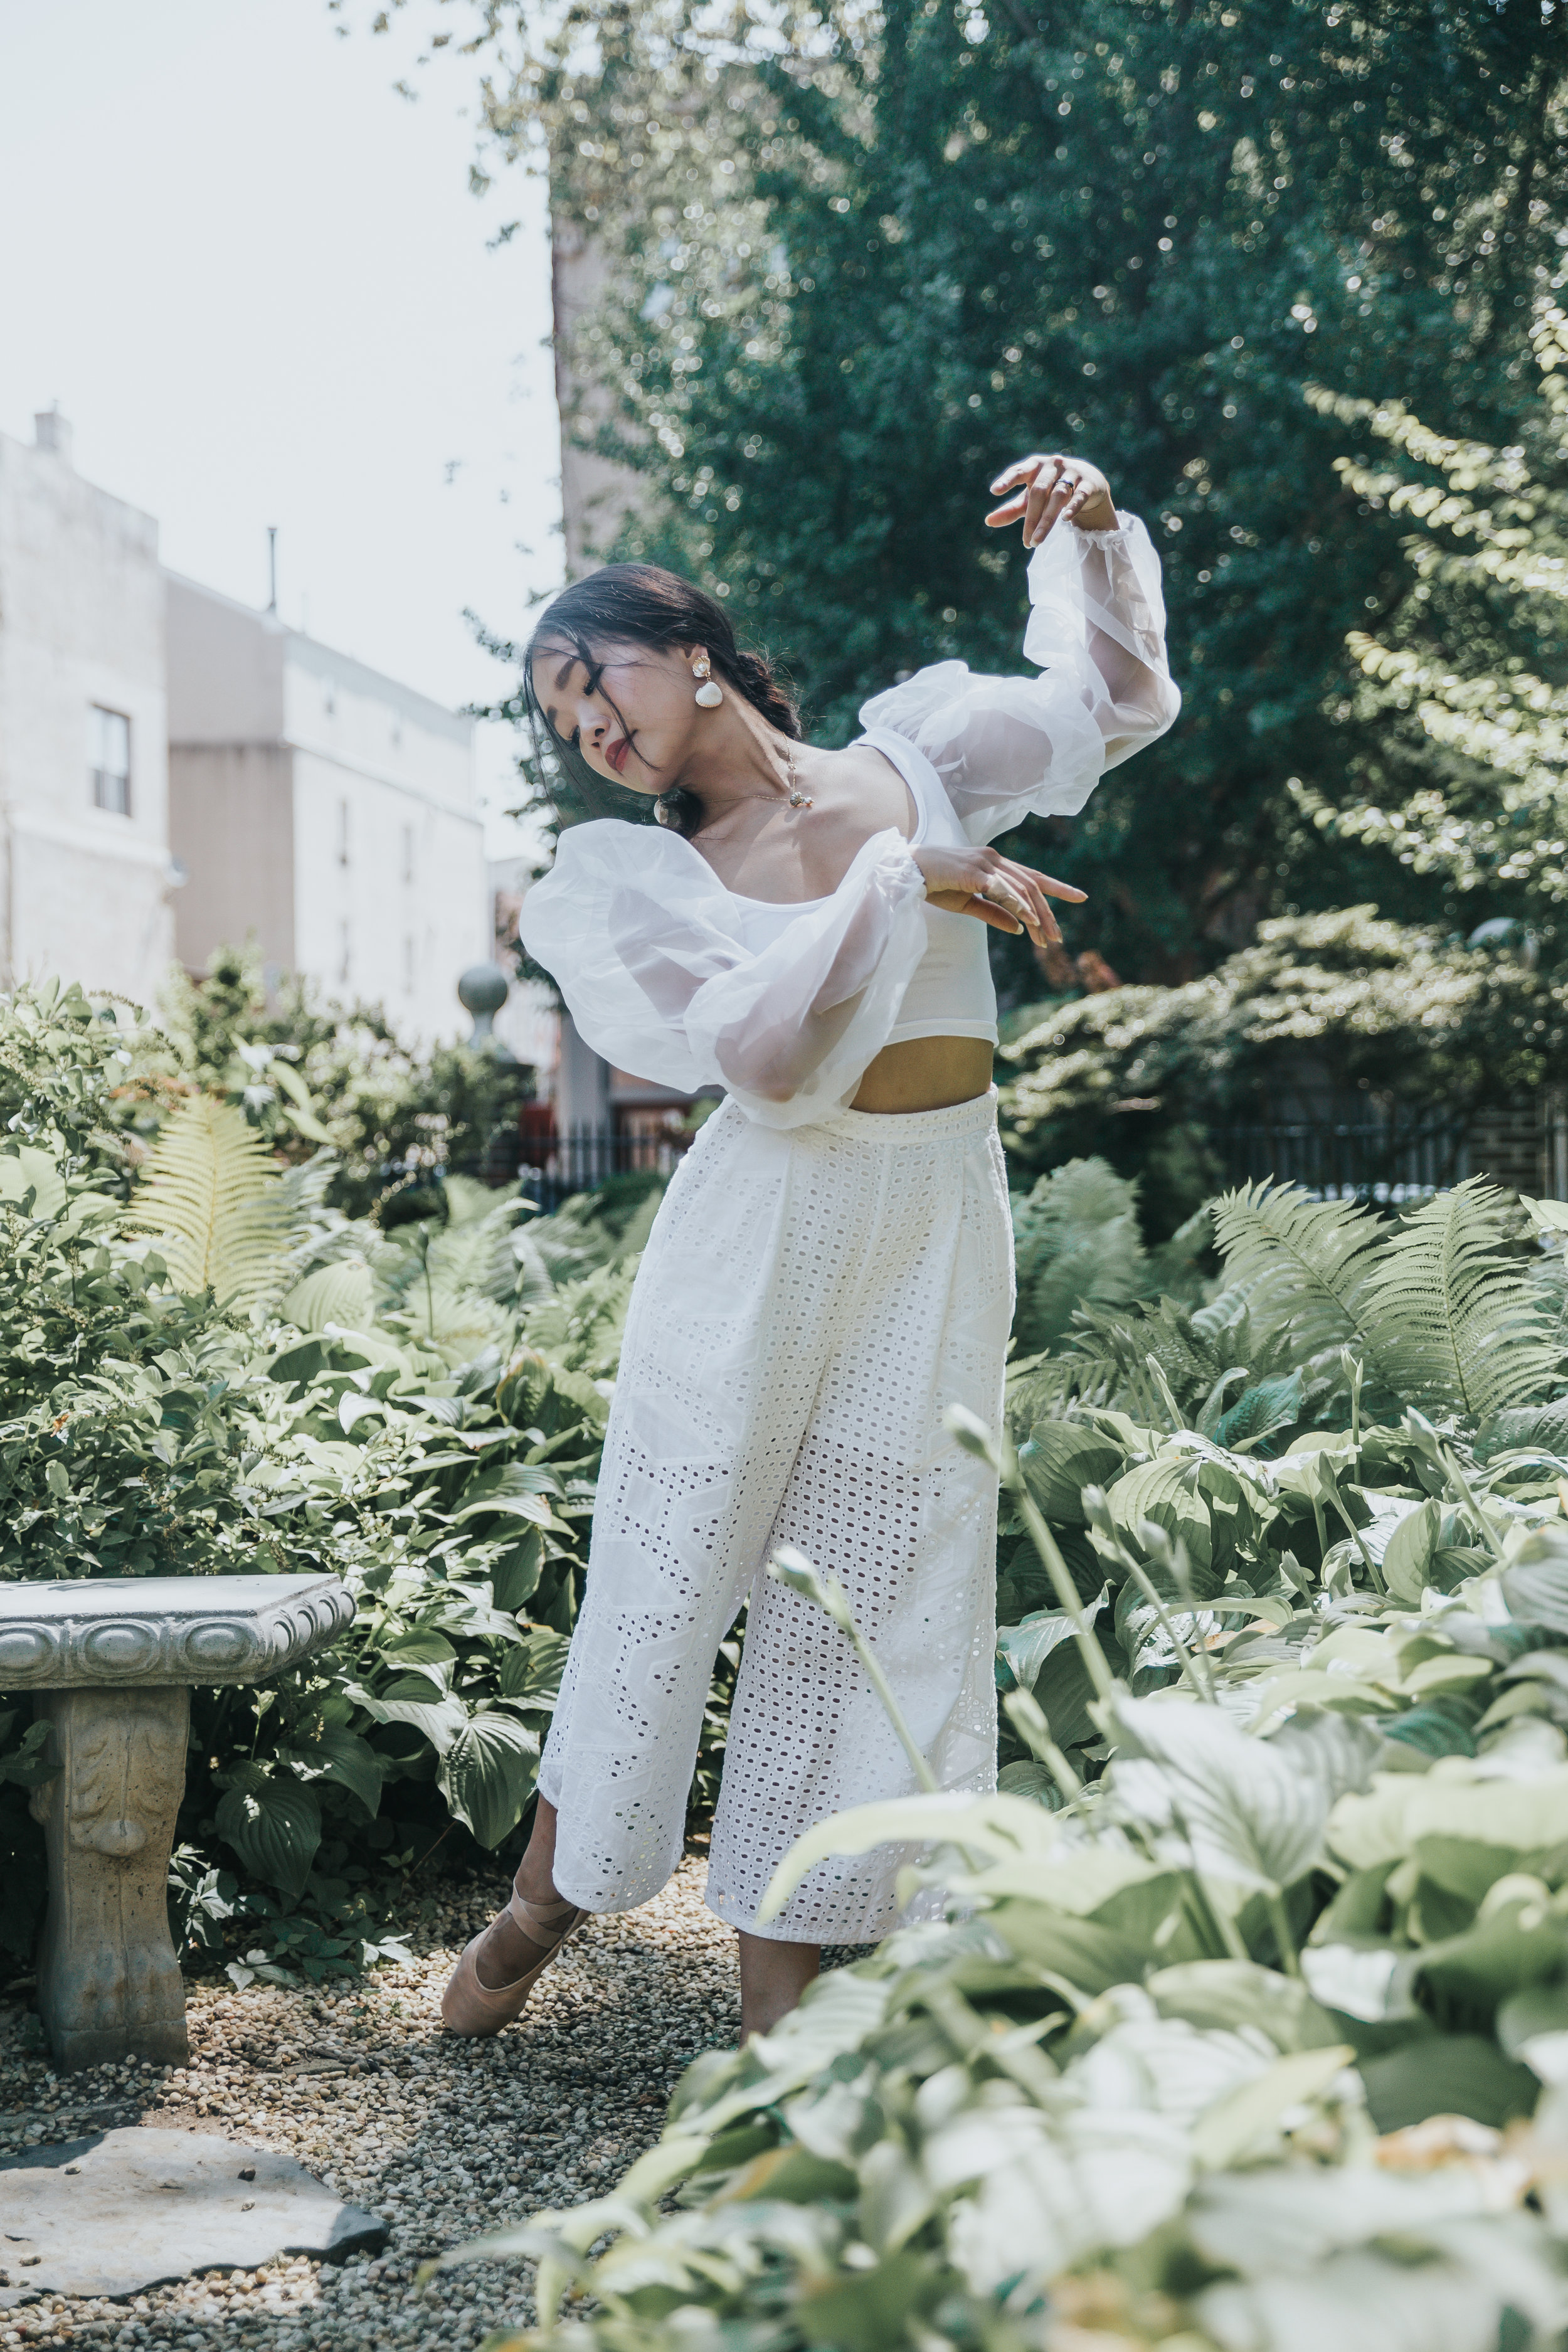 1. Women were NOT allowed to join the ballet - Ballet originated in ITALY(not France!) in the 15th century, but in general woman were not allowed to dance in public until 1681.. So couldn't join the ballet!